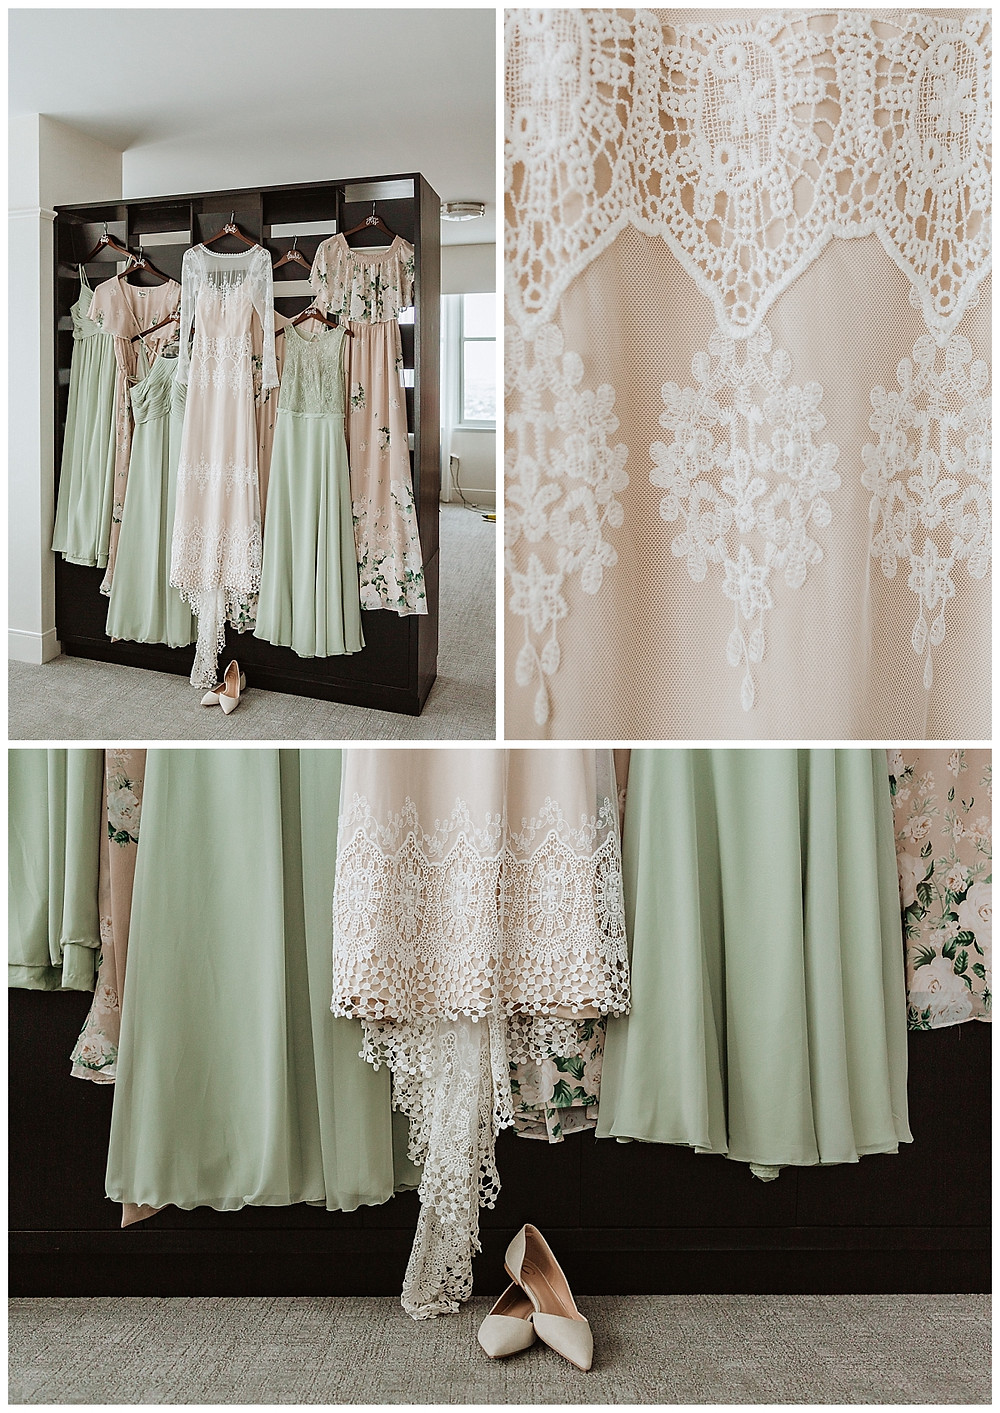 Dreamers and Lovers Lace Wedding Dress with Light Green and Beige Floral Bridesmaid Dresses